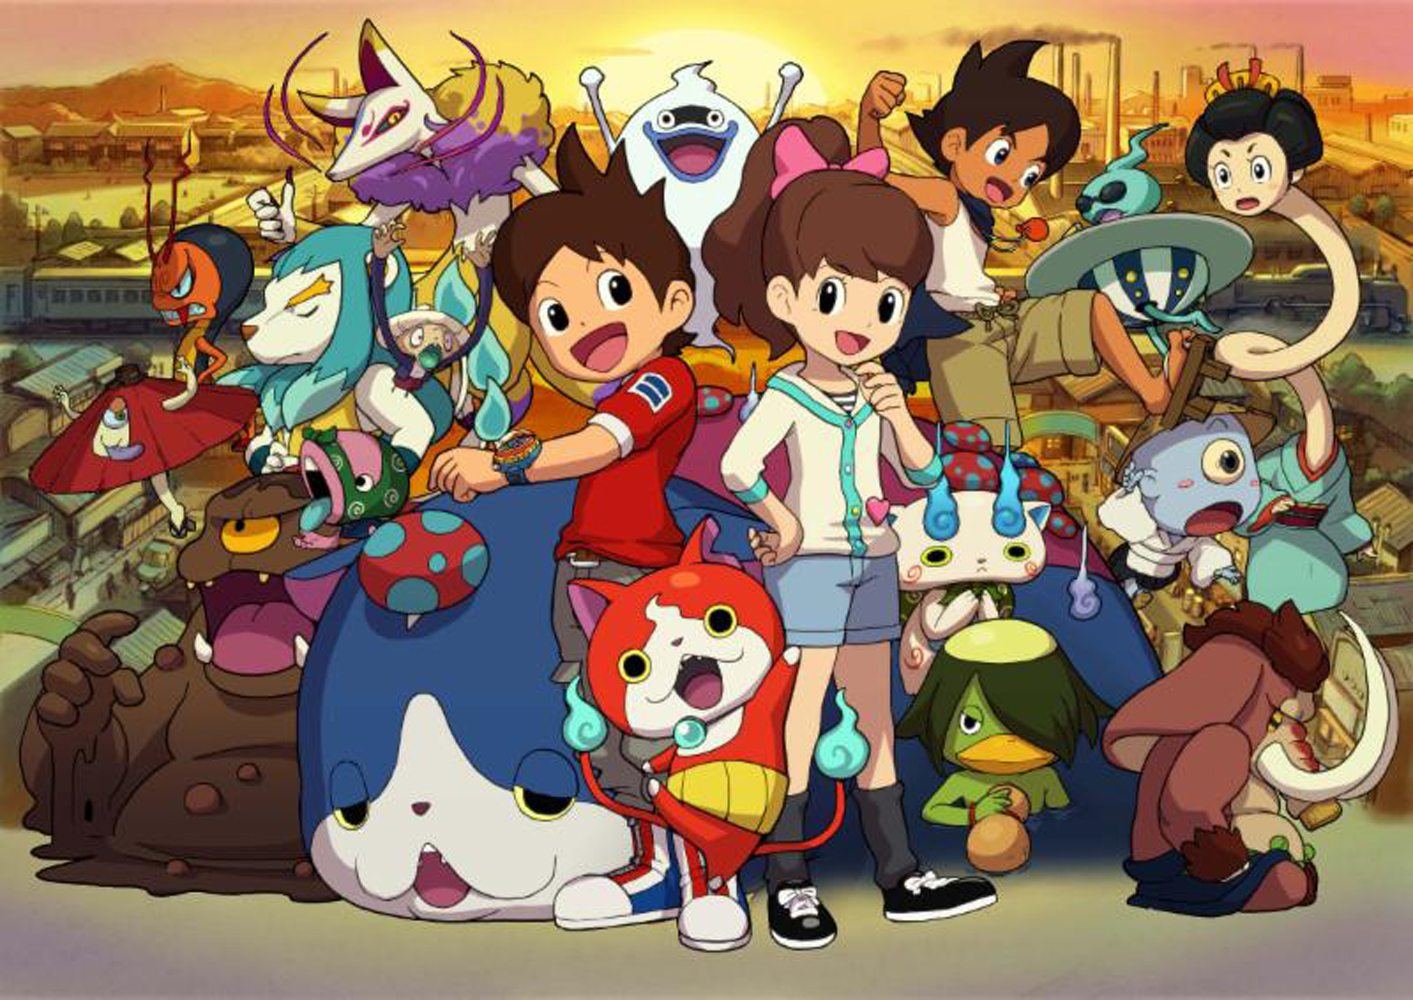 yo-kai-watch-2-gaming-cypherYO-KAI WATCH The Movie Arrives in Theaters Nationwide this Saturday